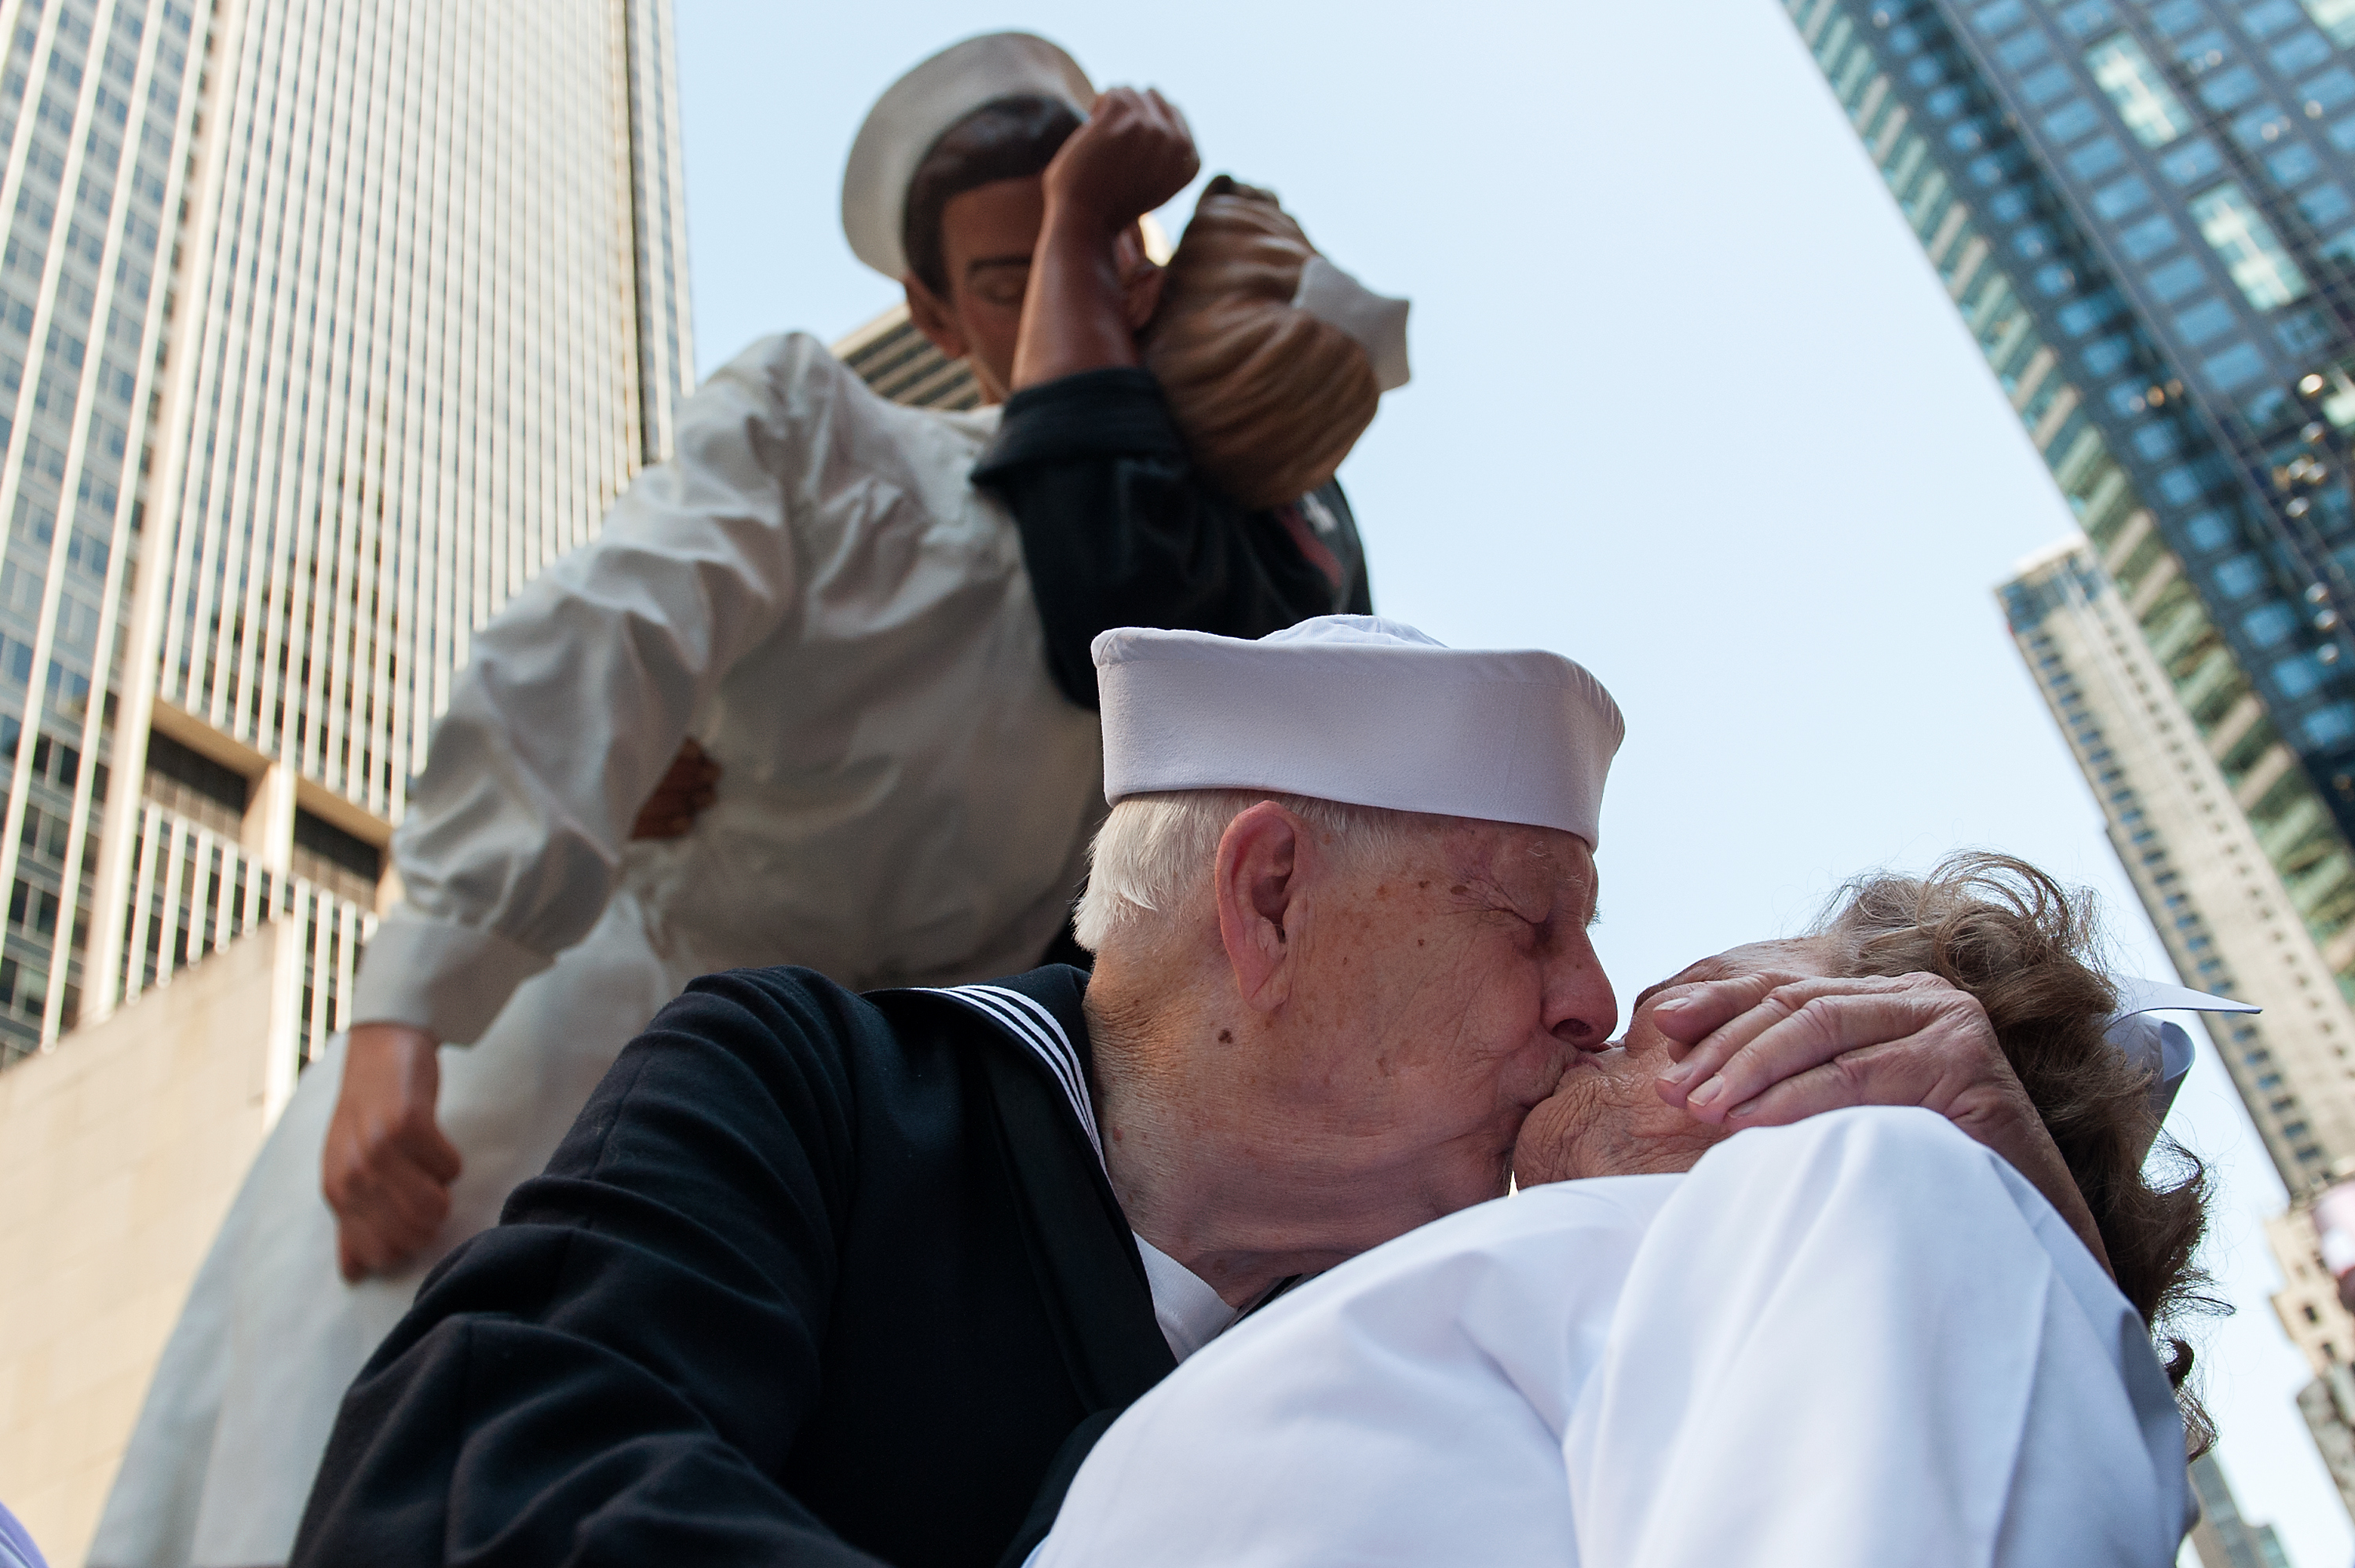 NEW YORK, NY - AUGUST 14: World War II Veterans Ray and Ellie Williams recreate the iconic Alfred Eisenstaedt photograph in Times Square on August 14, 2015 in New York City. The Williams, Navy veterans also celebrating their 70th wedding anniversary, recreated the kiss as part of a ceremony remembering the 70th anniversary of Victory in Japan Day.  (Photo by Bryan Thomas/Getty Images)